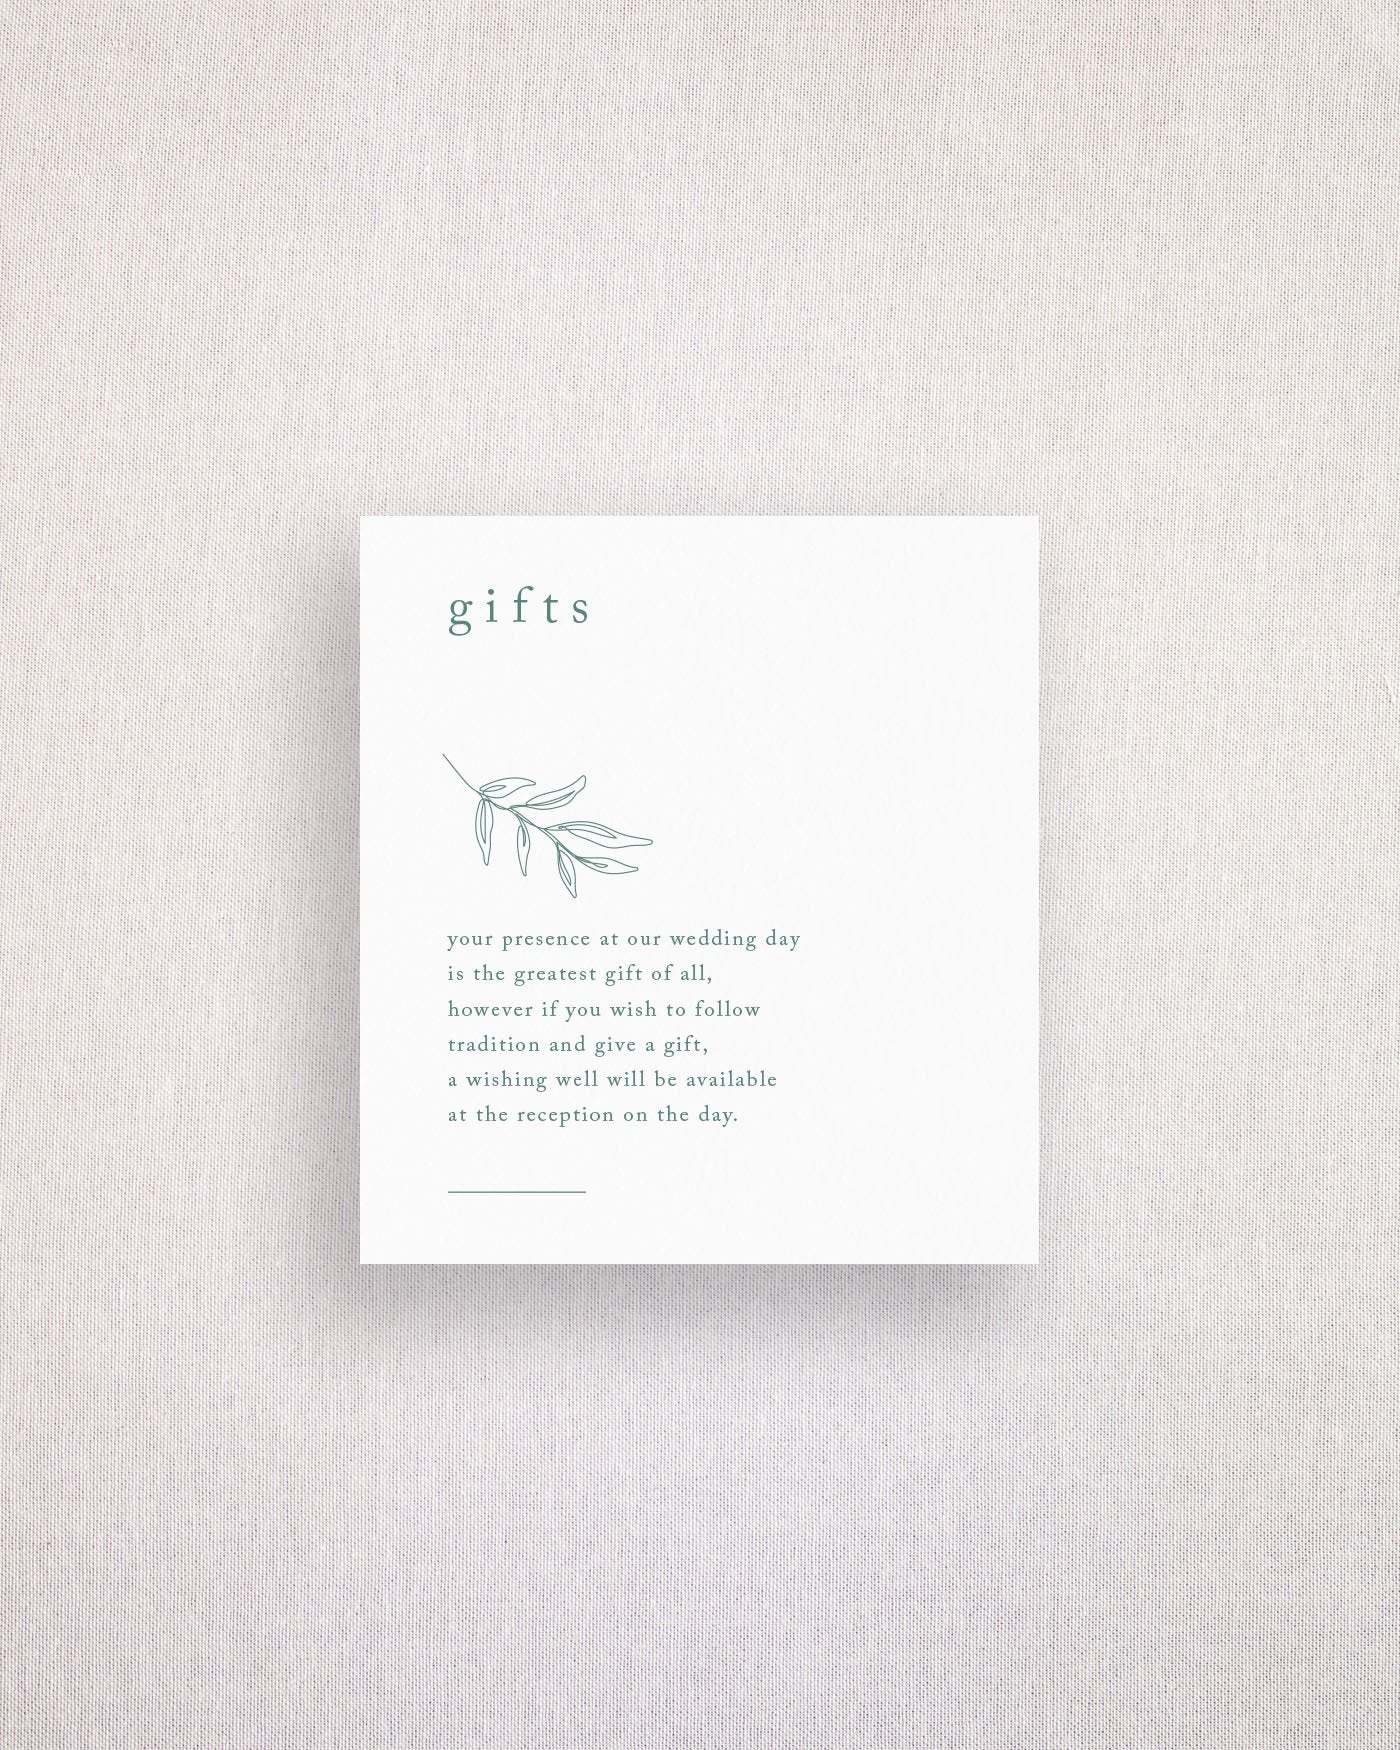 Habitat Note on Gifts